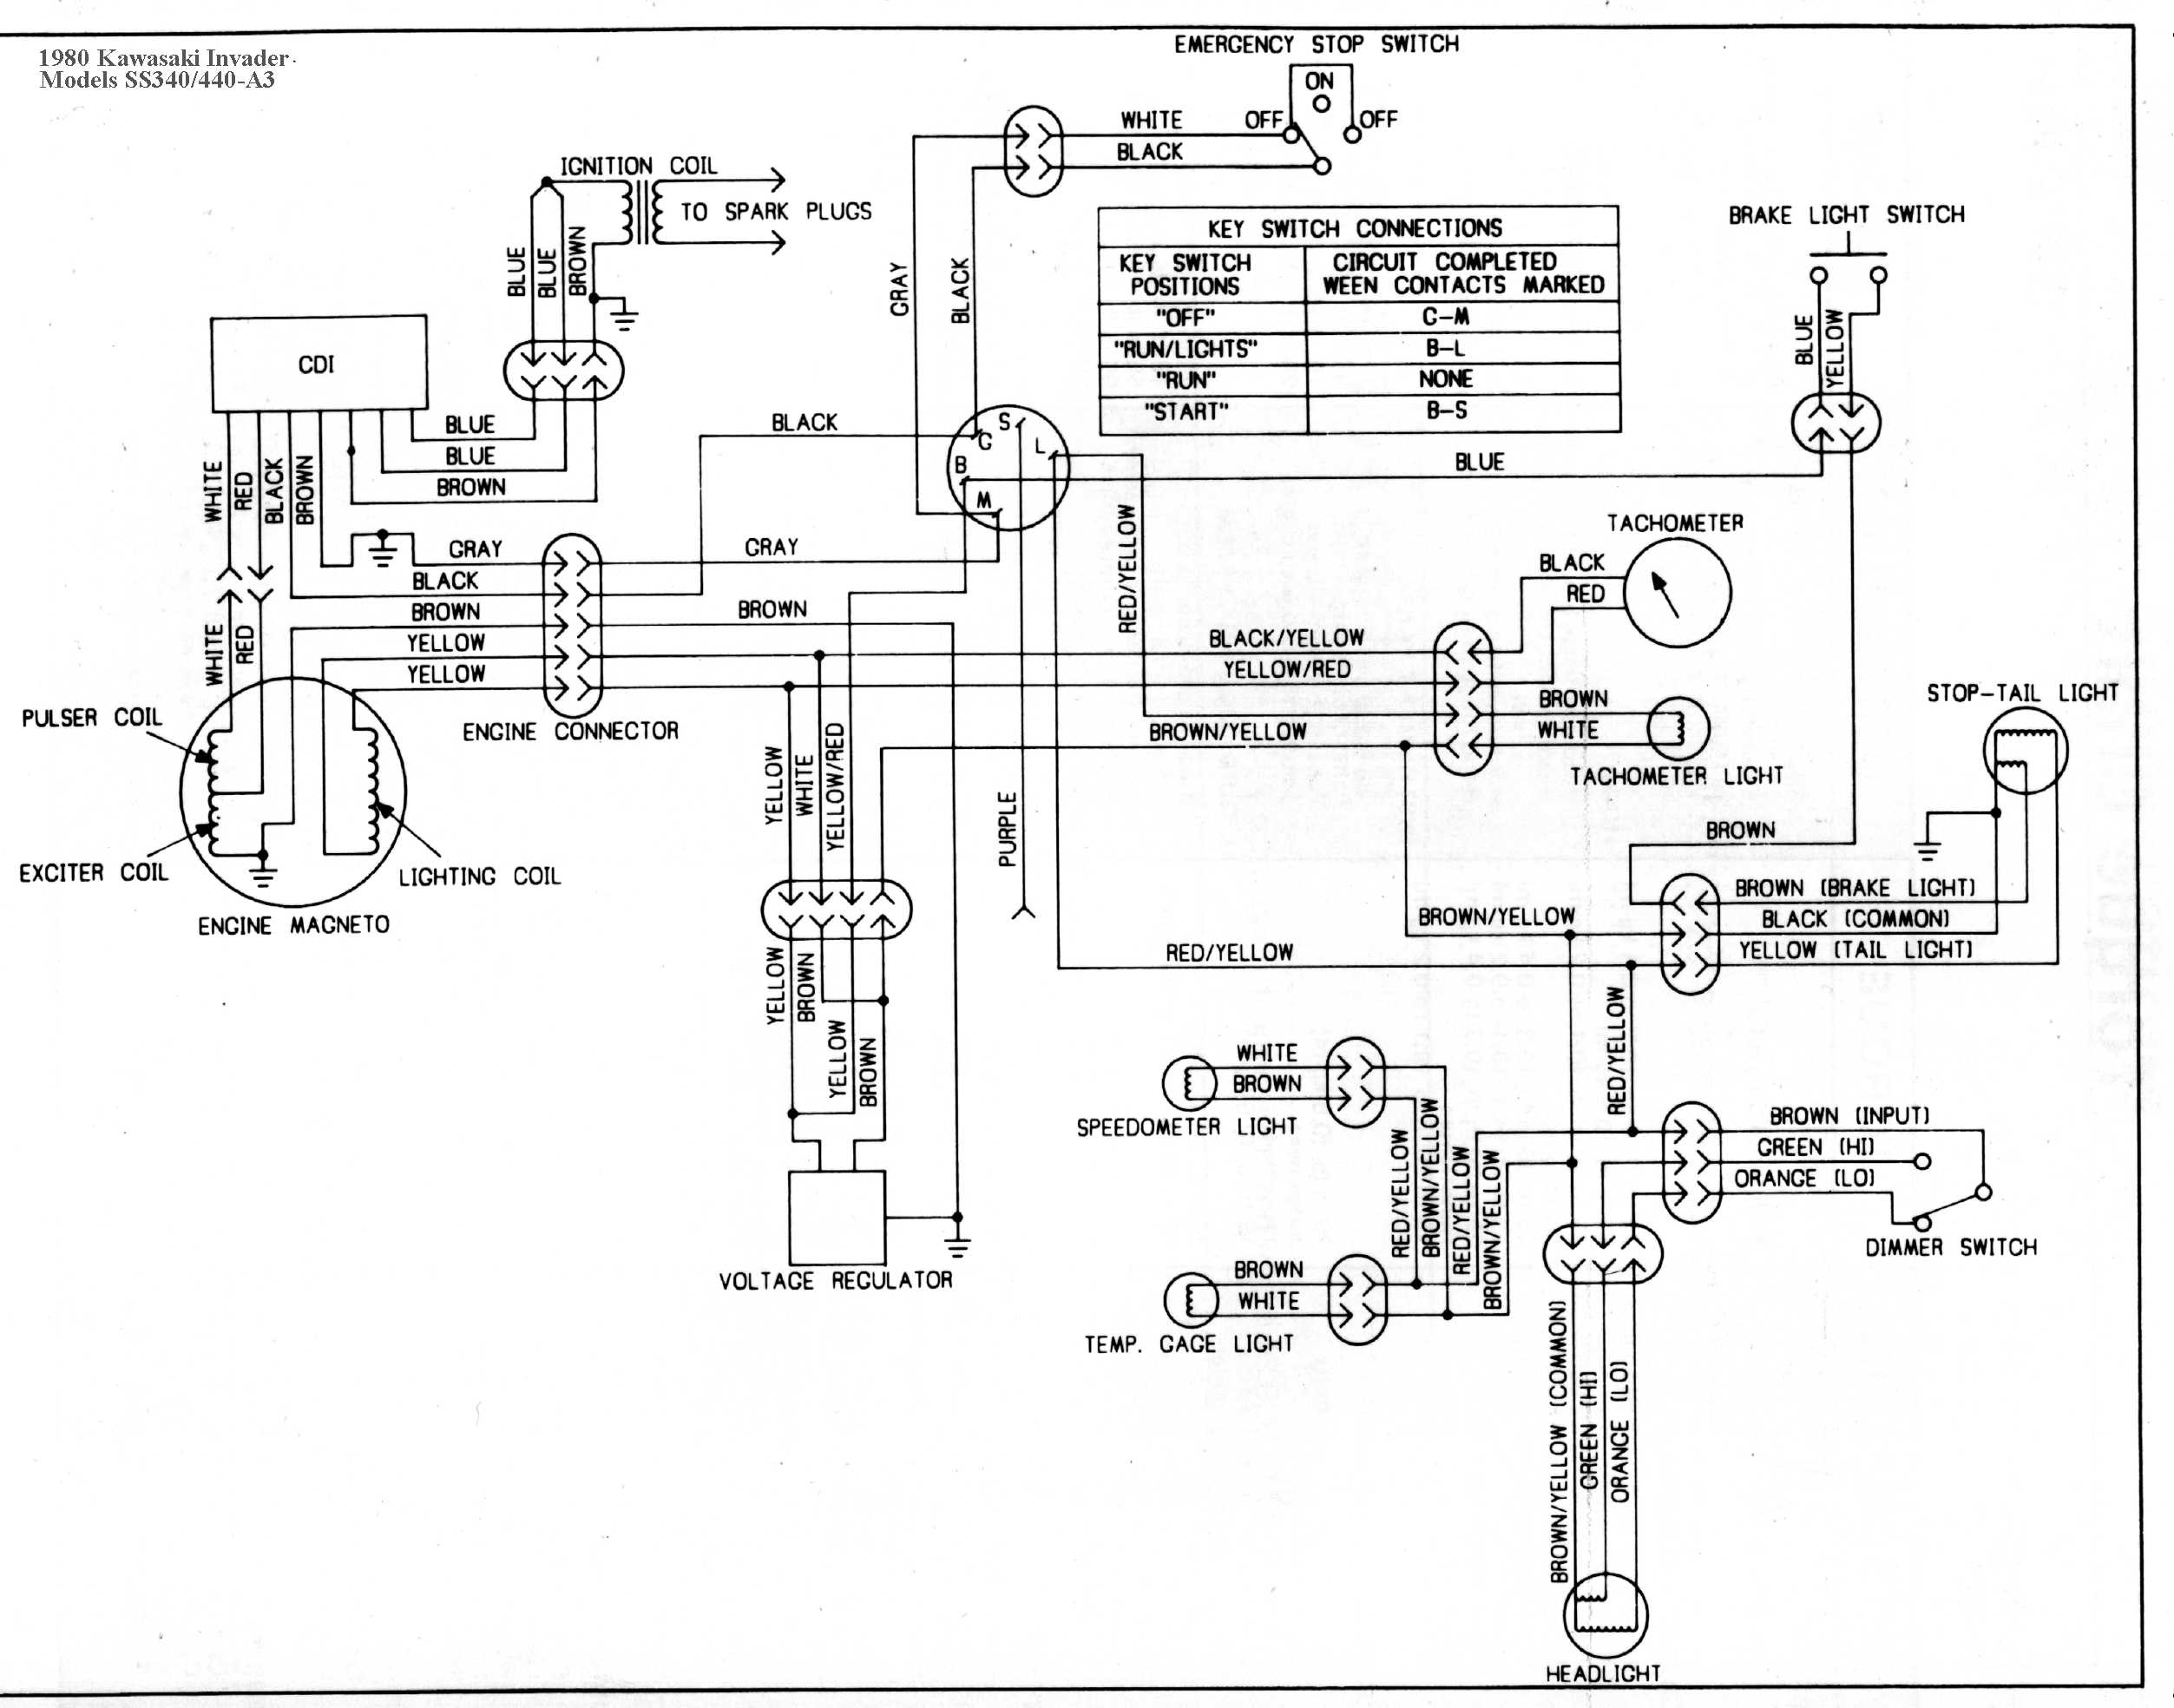 Kz1000 Routing Wiring Diagram - Wiring Diagram Article on